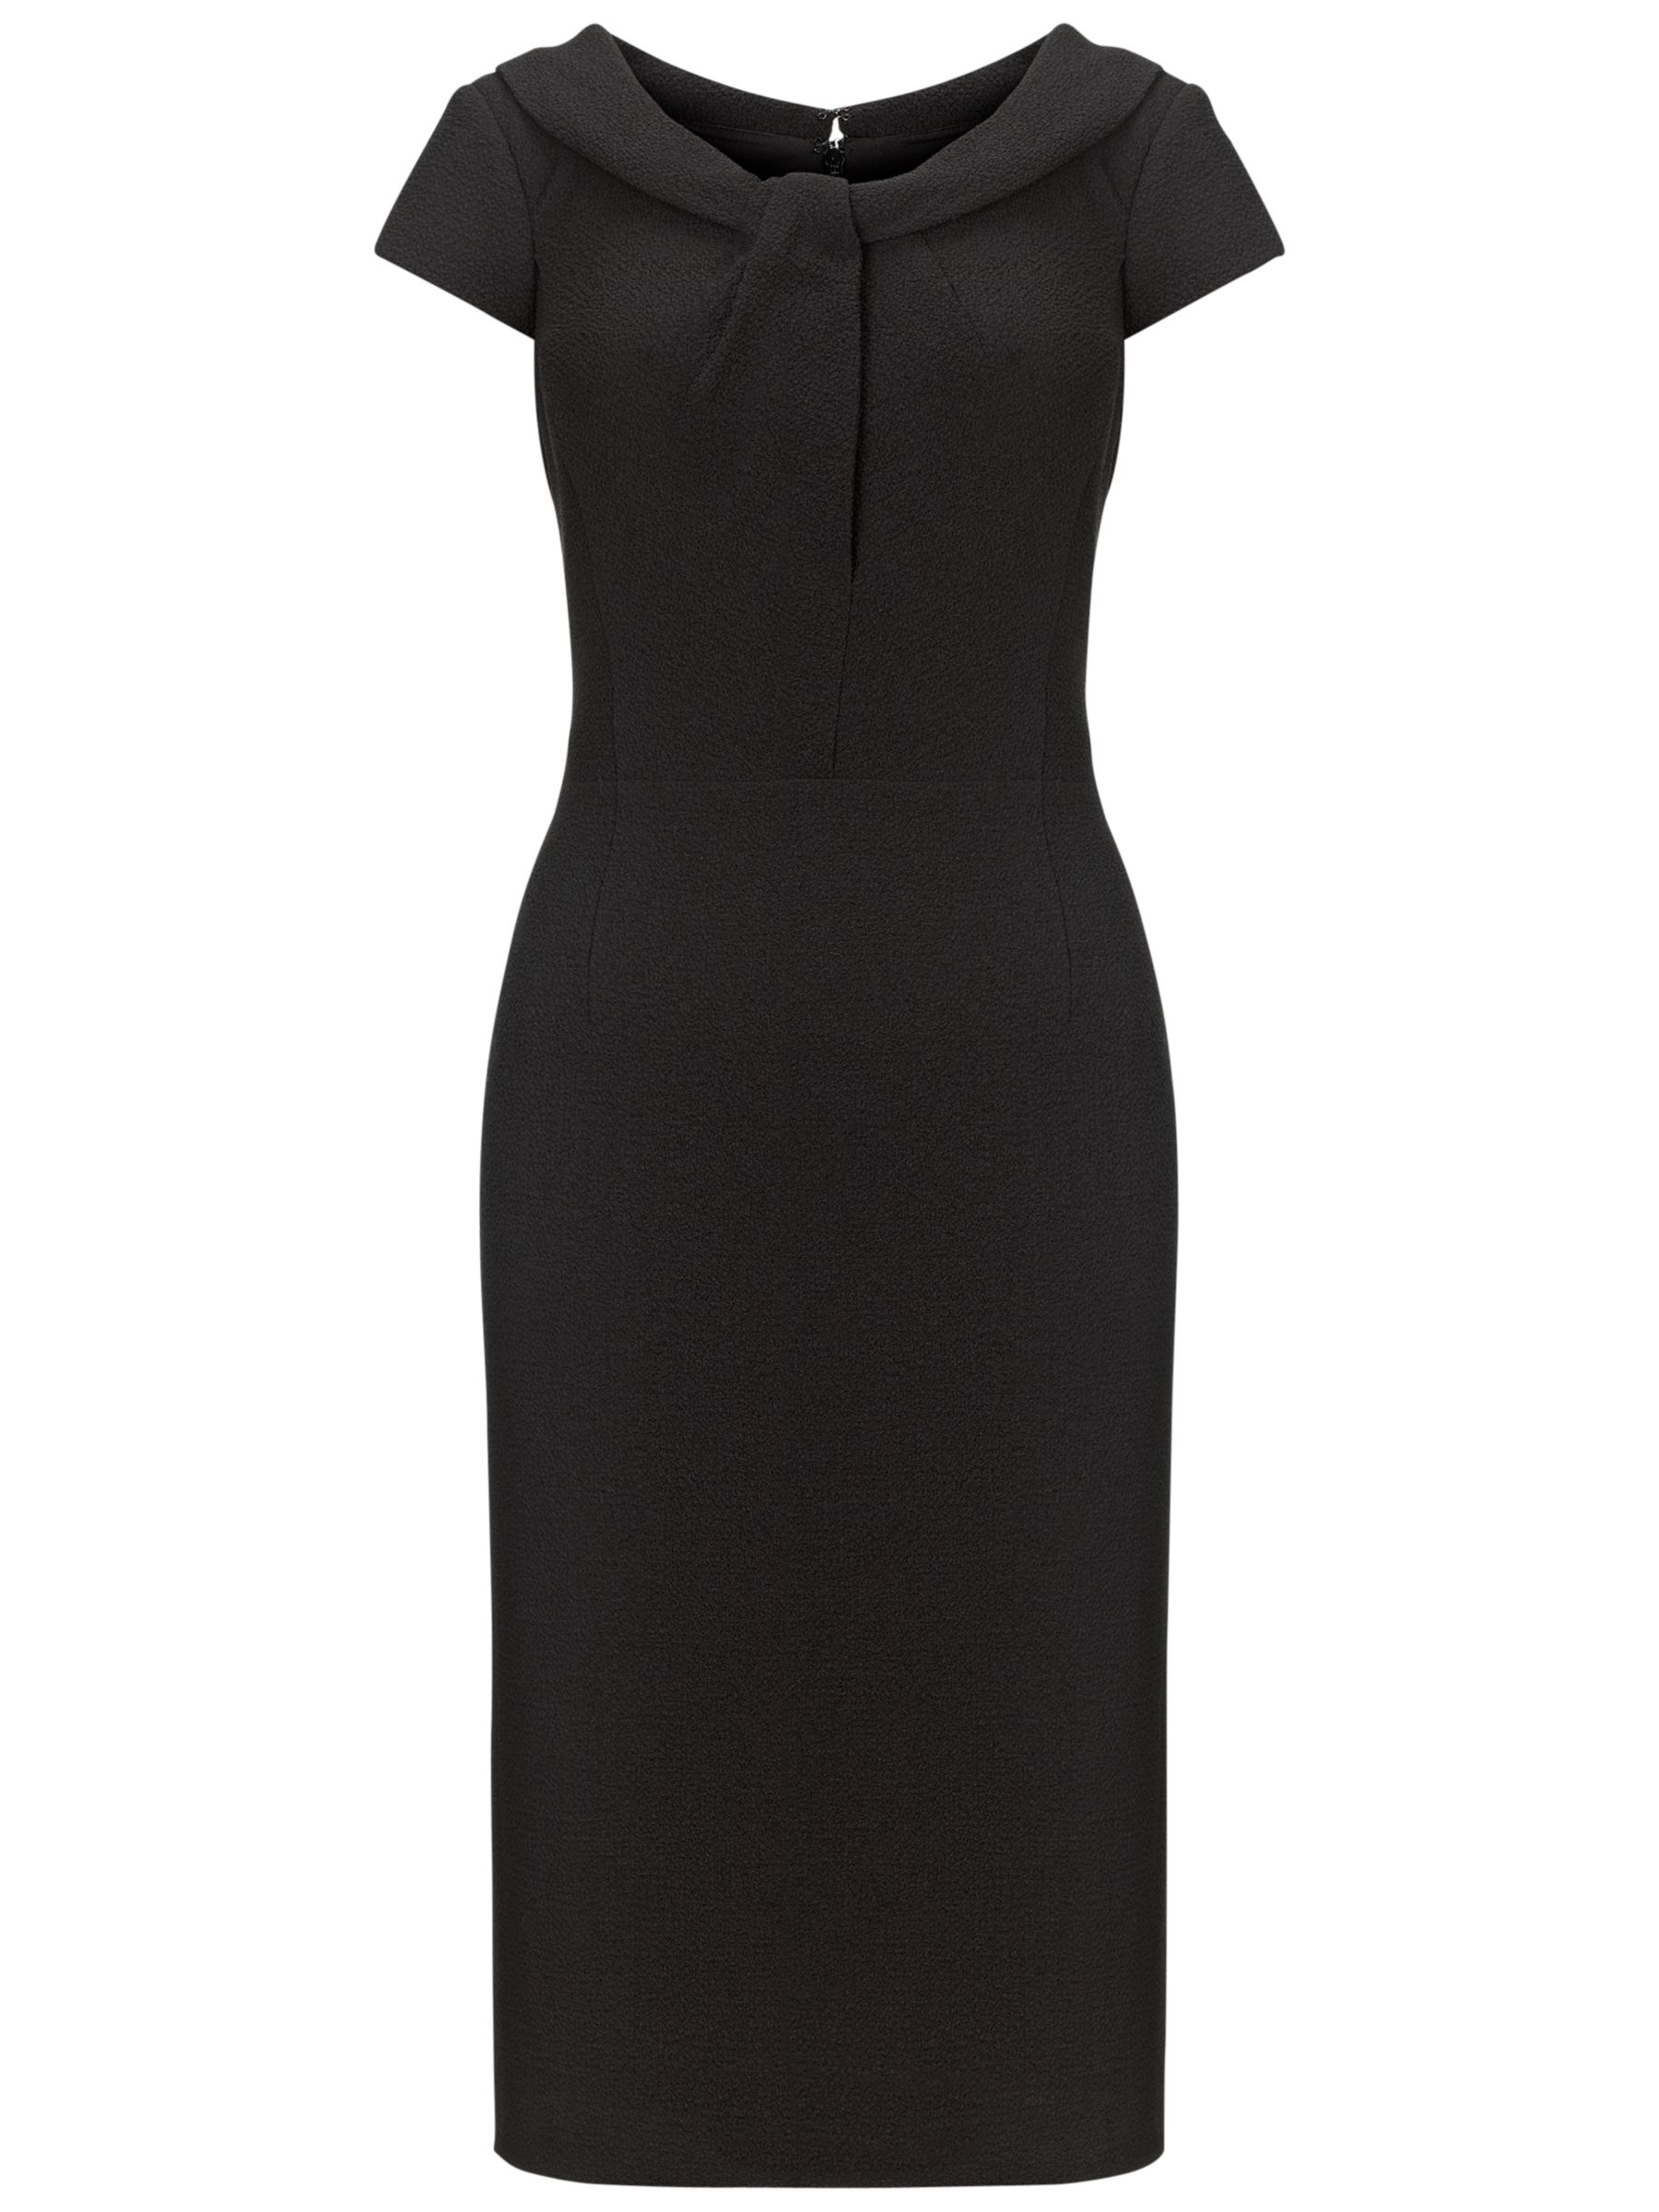 gina bacconi empire stretch crepe dress black, gina, bacconi, empire, stretch, crepe, dress, black, gina bacconi, 12|14, clearance, womenswear offers, womens dresses offers, women, plus size, inactive womenswear, new reductions, womens dresses, special offers, 1695869